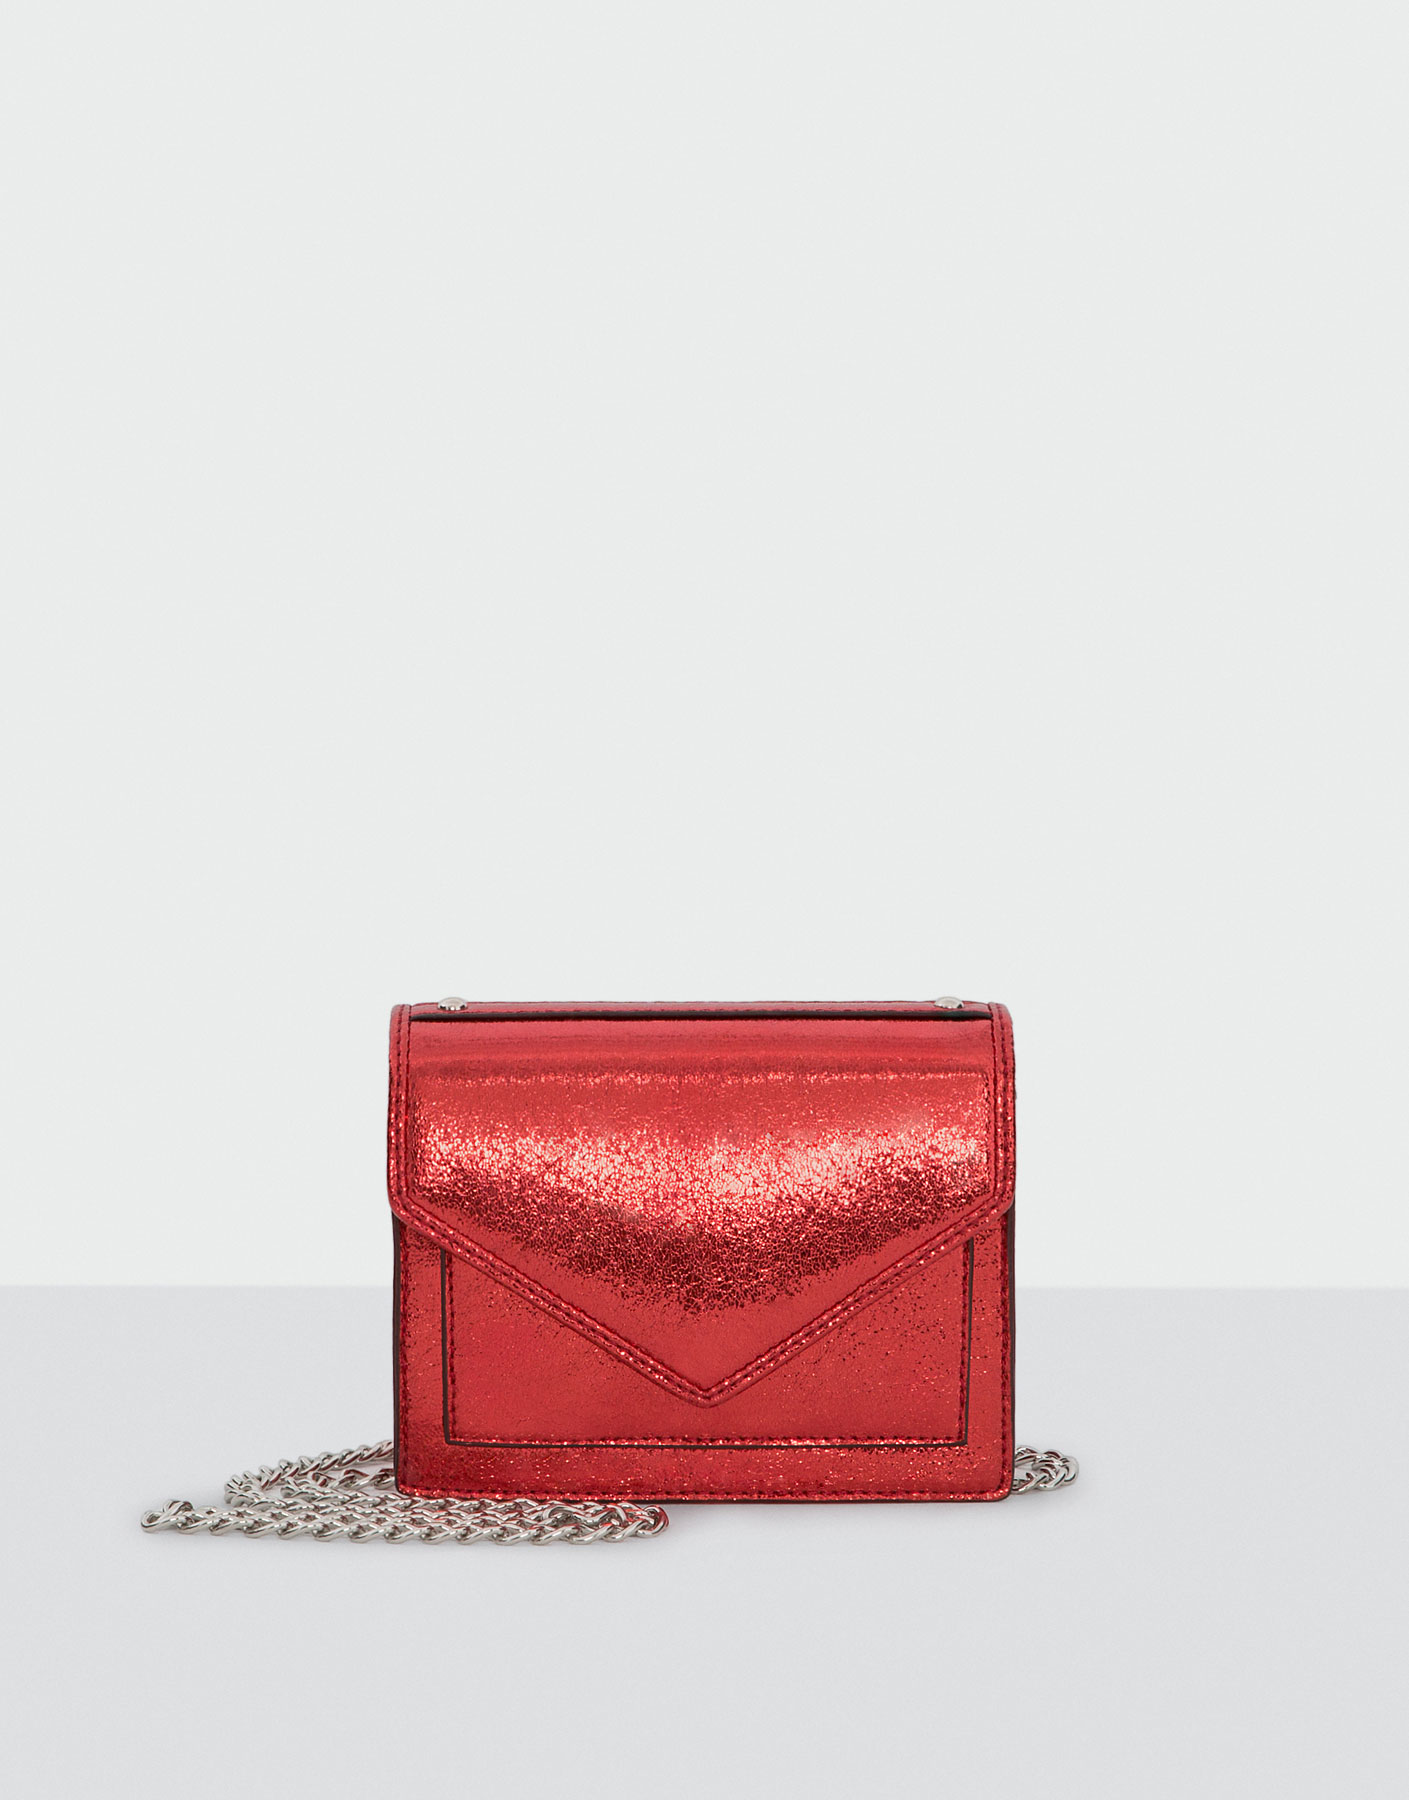 Mini evening crossbody bag